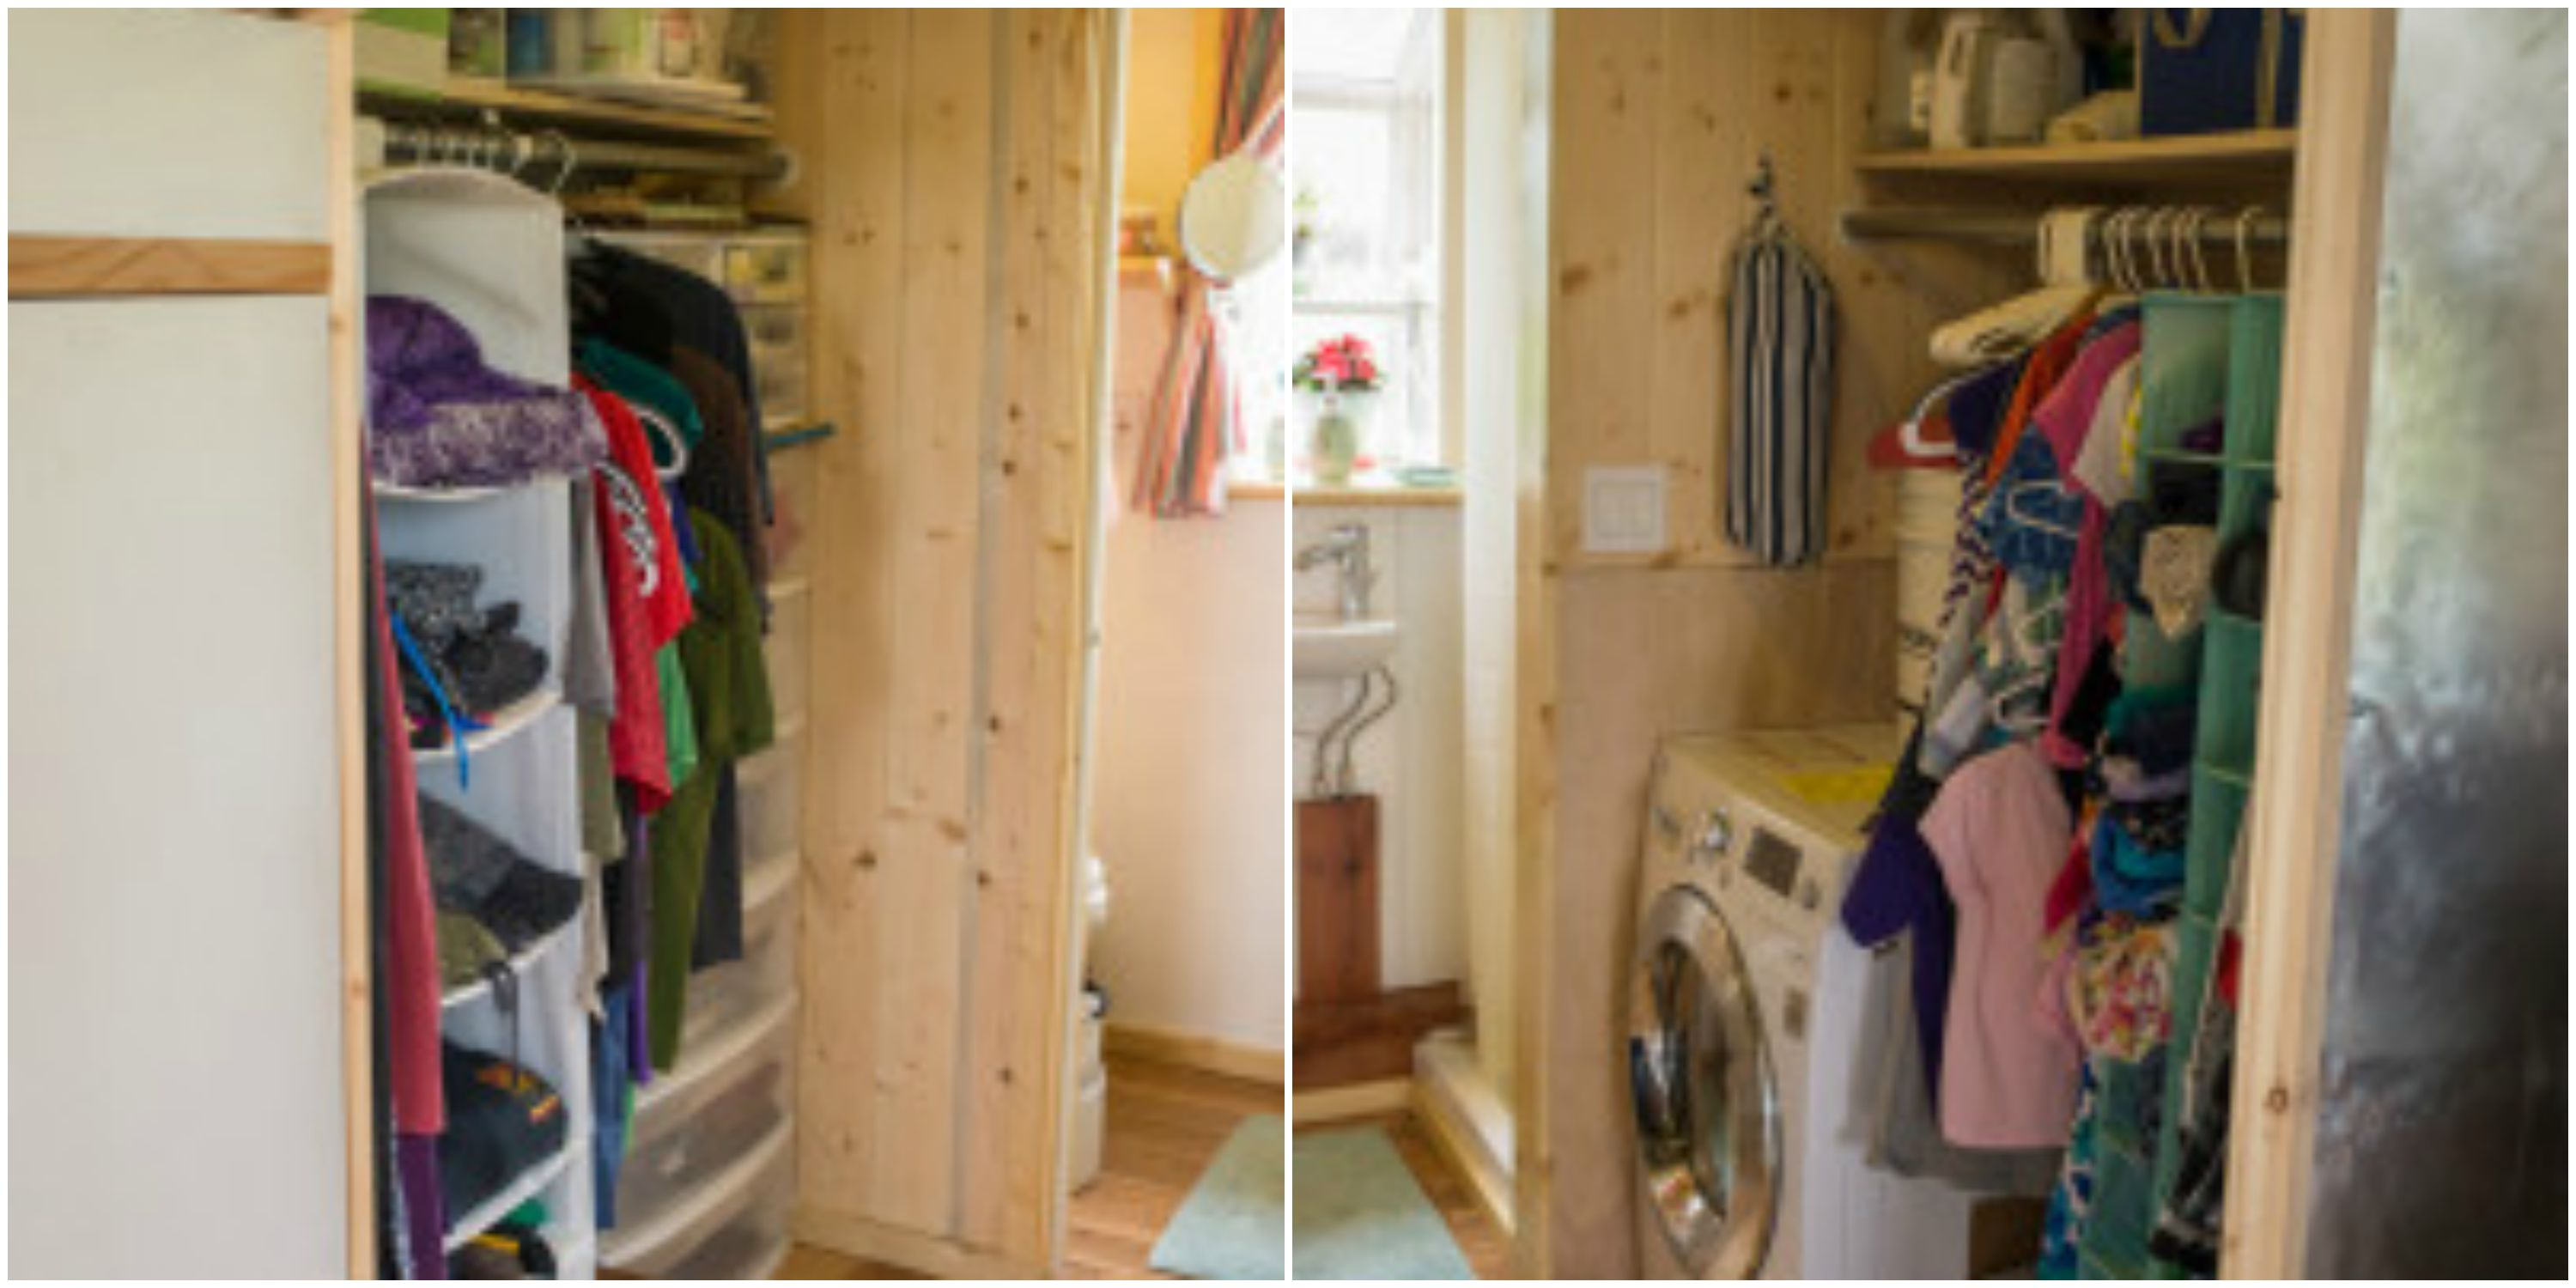 Pequod Tiny House closet and laundry area